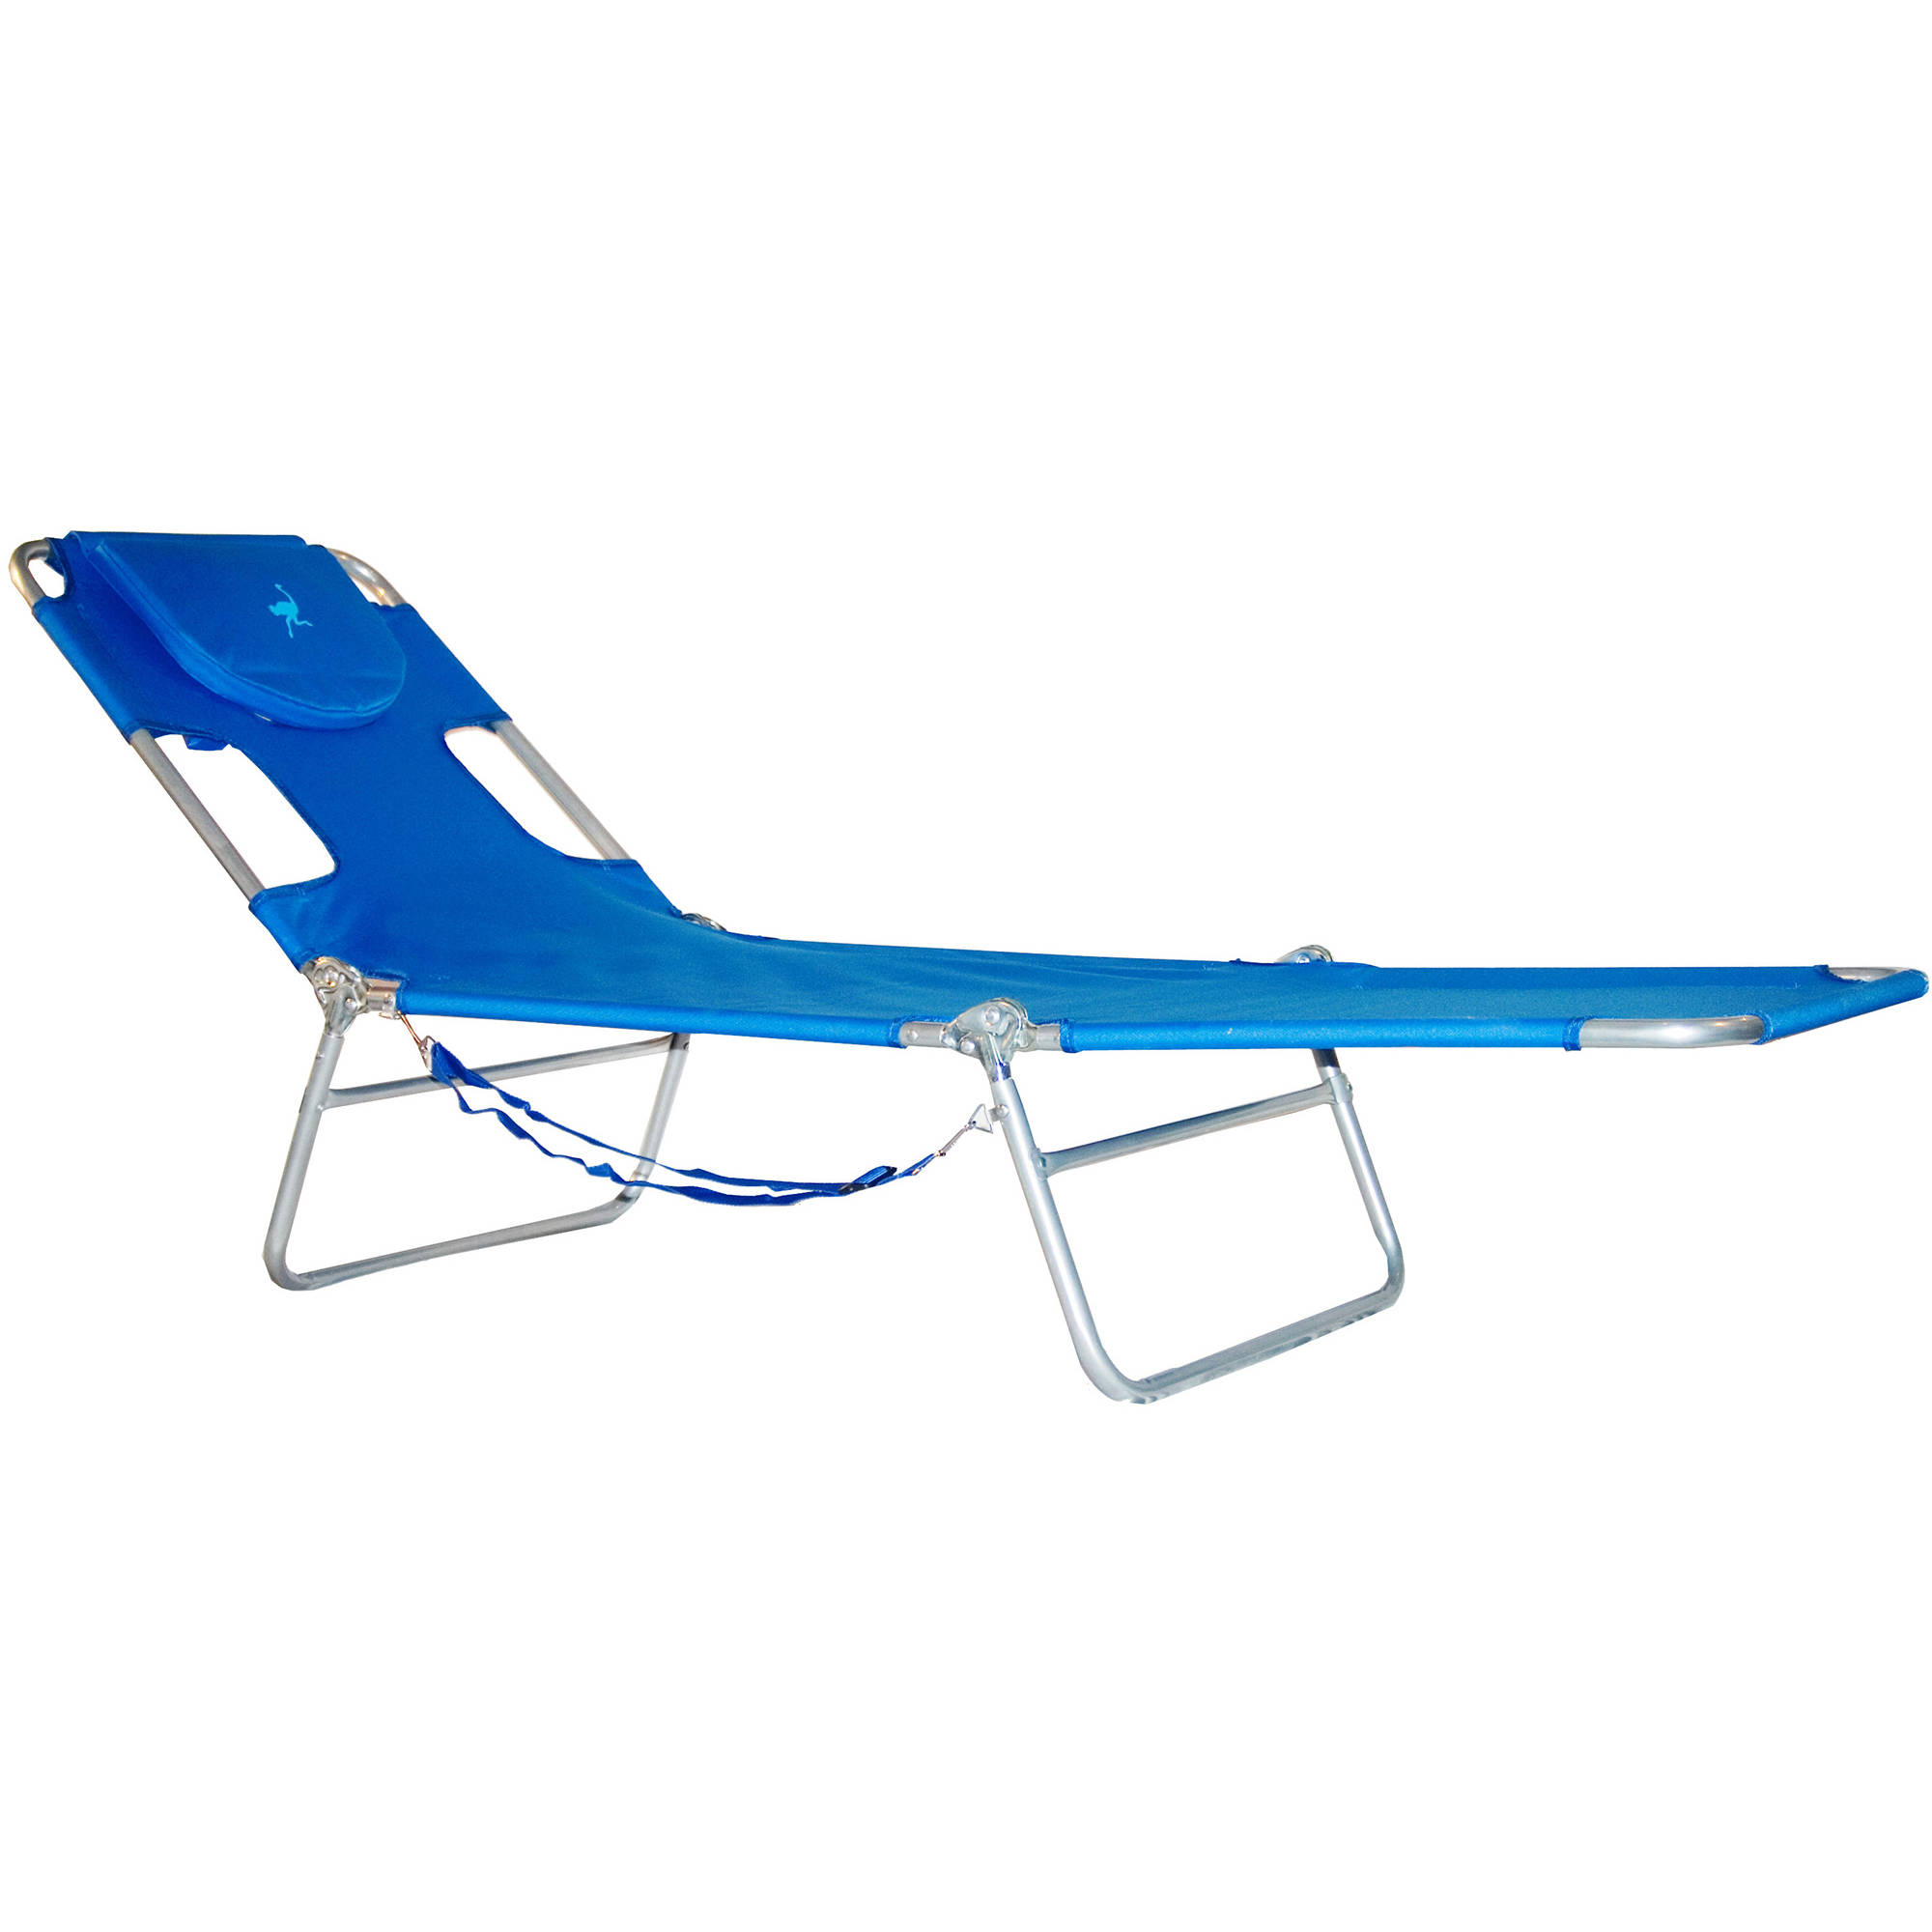 beach pool zoom lounger pink face folding chaise everywherechair ostrich the position hover to lounge chair